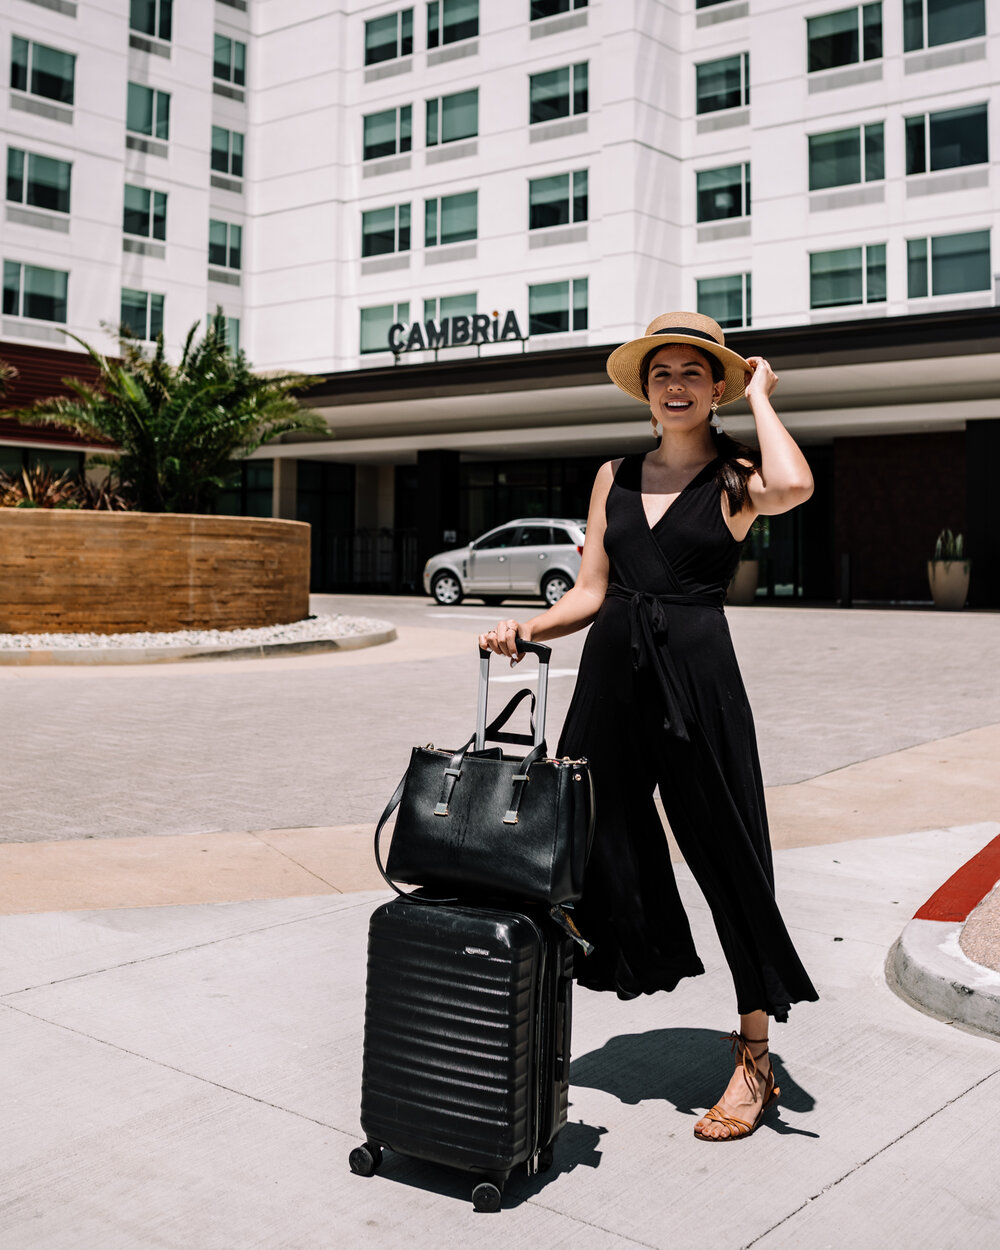 Rachel Off Duty: Woman in Black Jumpsuit with Luggage Standing in Front of Cambria Hotel in Anaheim